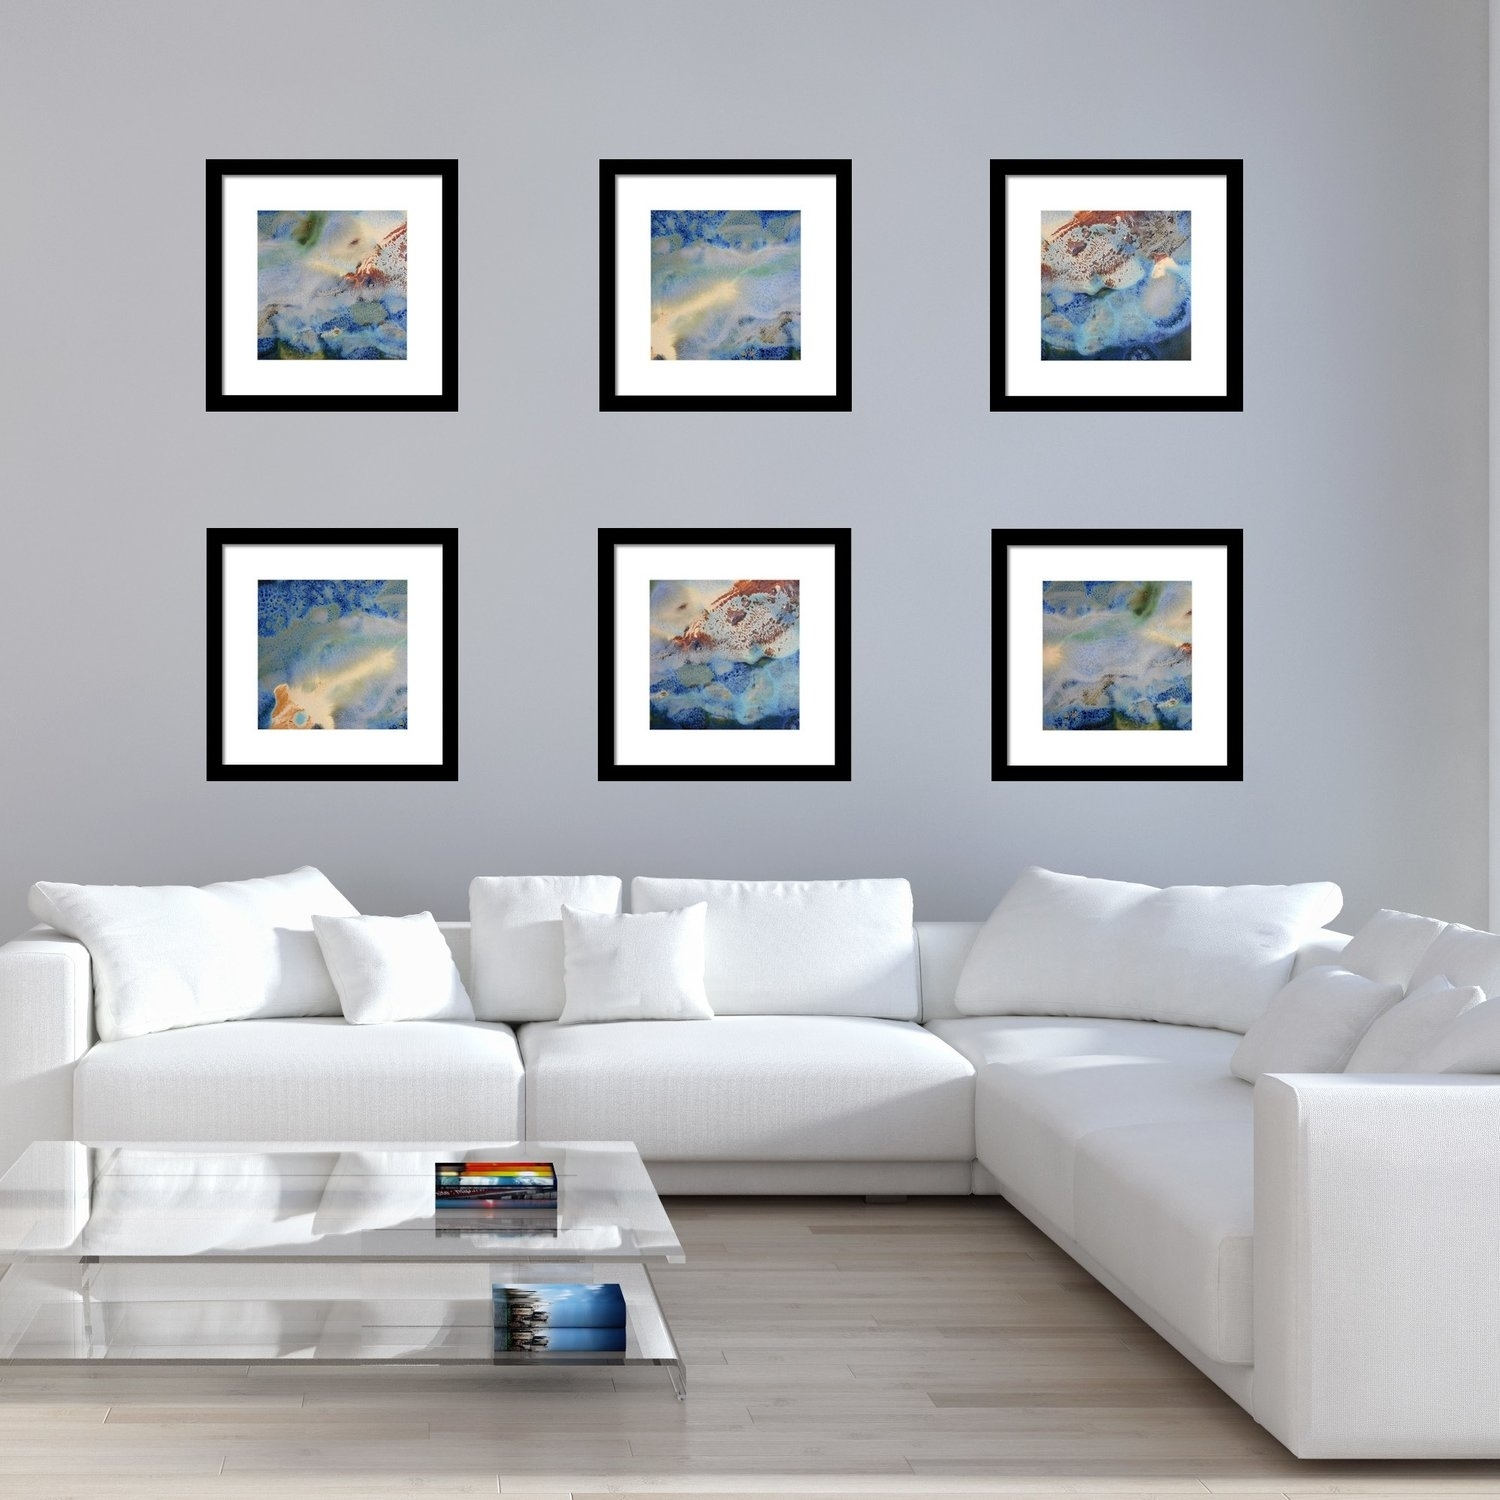 Living Room Paintings 2018 Popular Framed Art Prints For Living Room